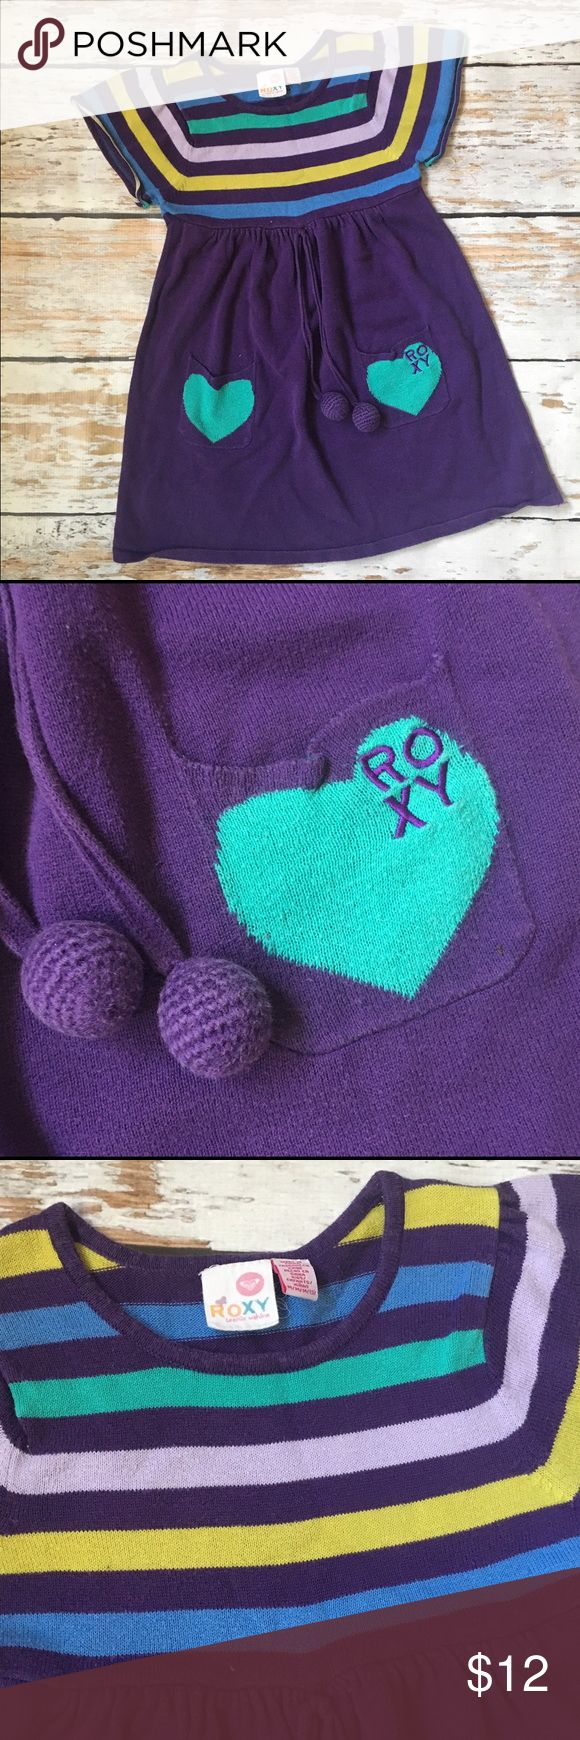 Roxy Girls Sweater Dress size 5 Purple, Cute Roxy Girls Sweater Dress size 5 Purple, Cute adorable sweater dress by Roxy. Plum purple with blue, jade green and lime yellow stripes. Comfy and cute! Roxy Dresses Casual